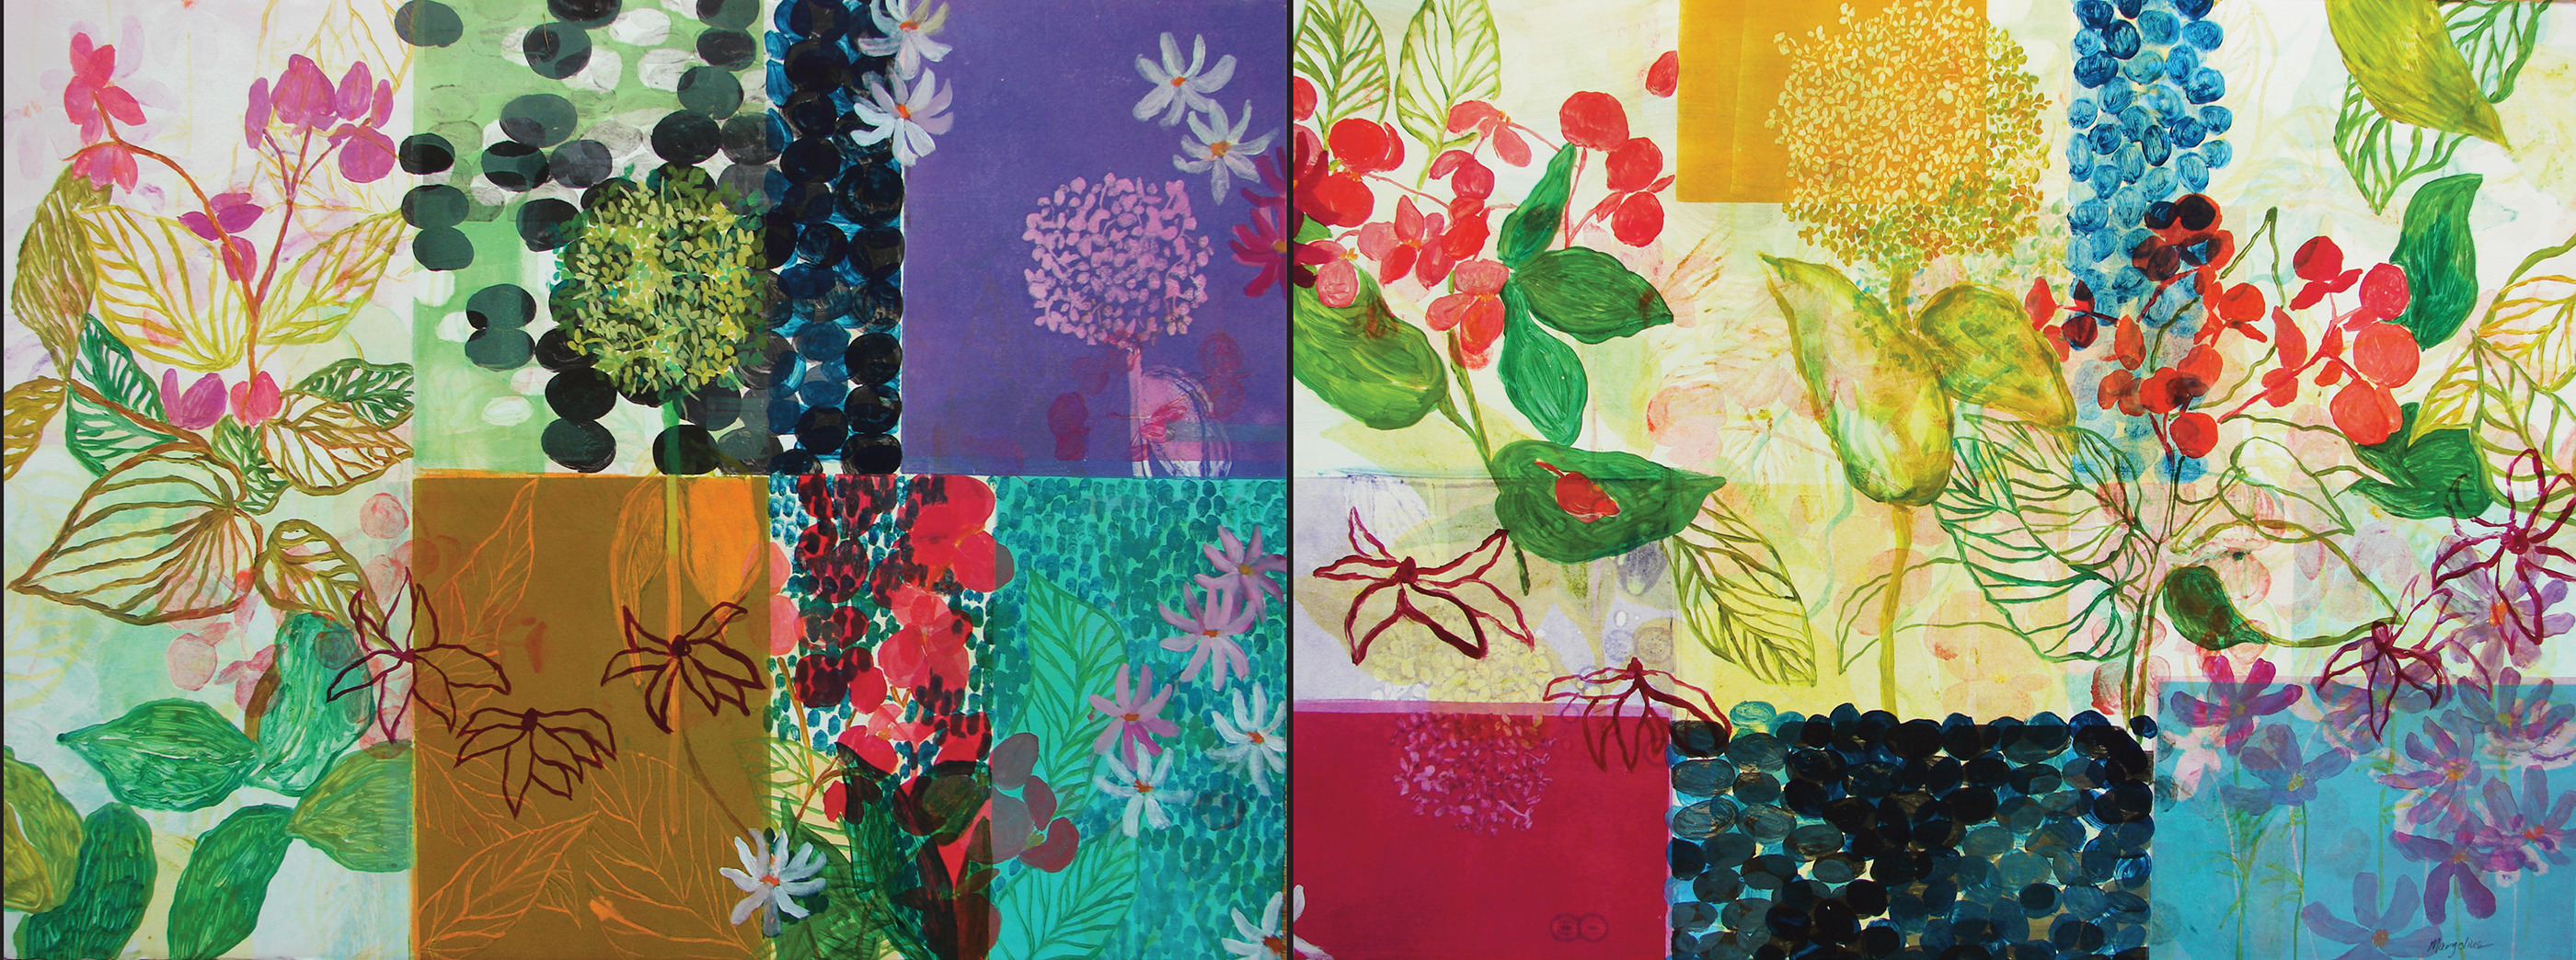 Large Diptych Monotypes August Garden